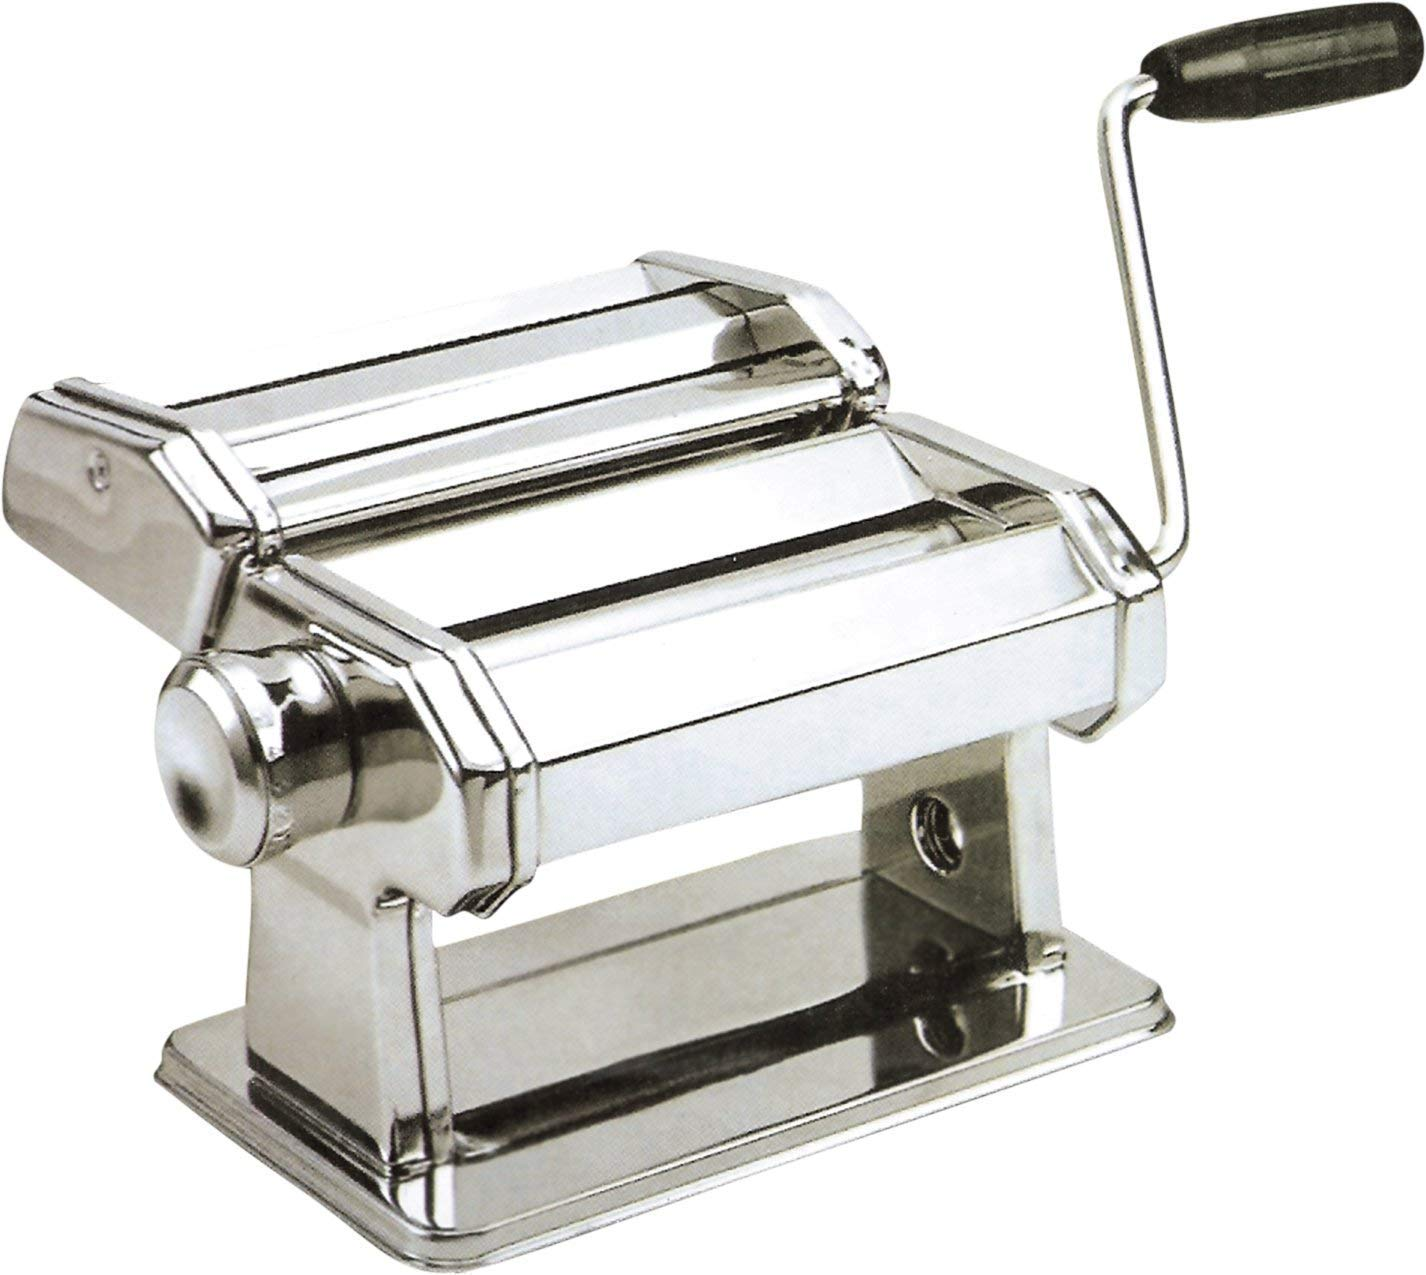 Josef Strauss Gourmet Manual Pasta Maker Machine | Makes Spaghetti and Fettuccini, Seven Adjustable Thickness Settings, 6 Inch Wide Roller, Stainless Steel by Josef Strauss